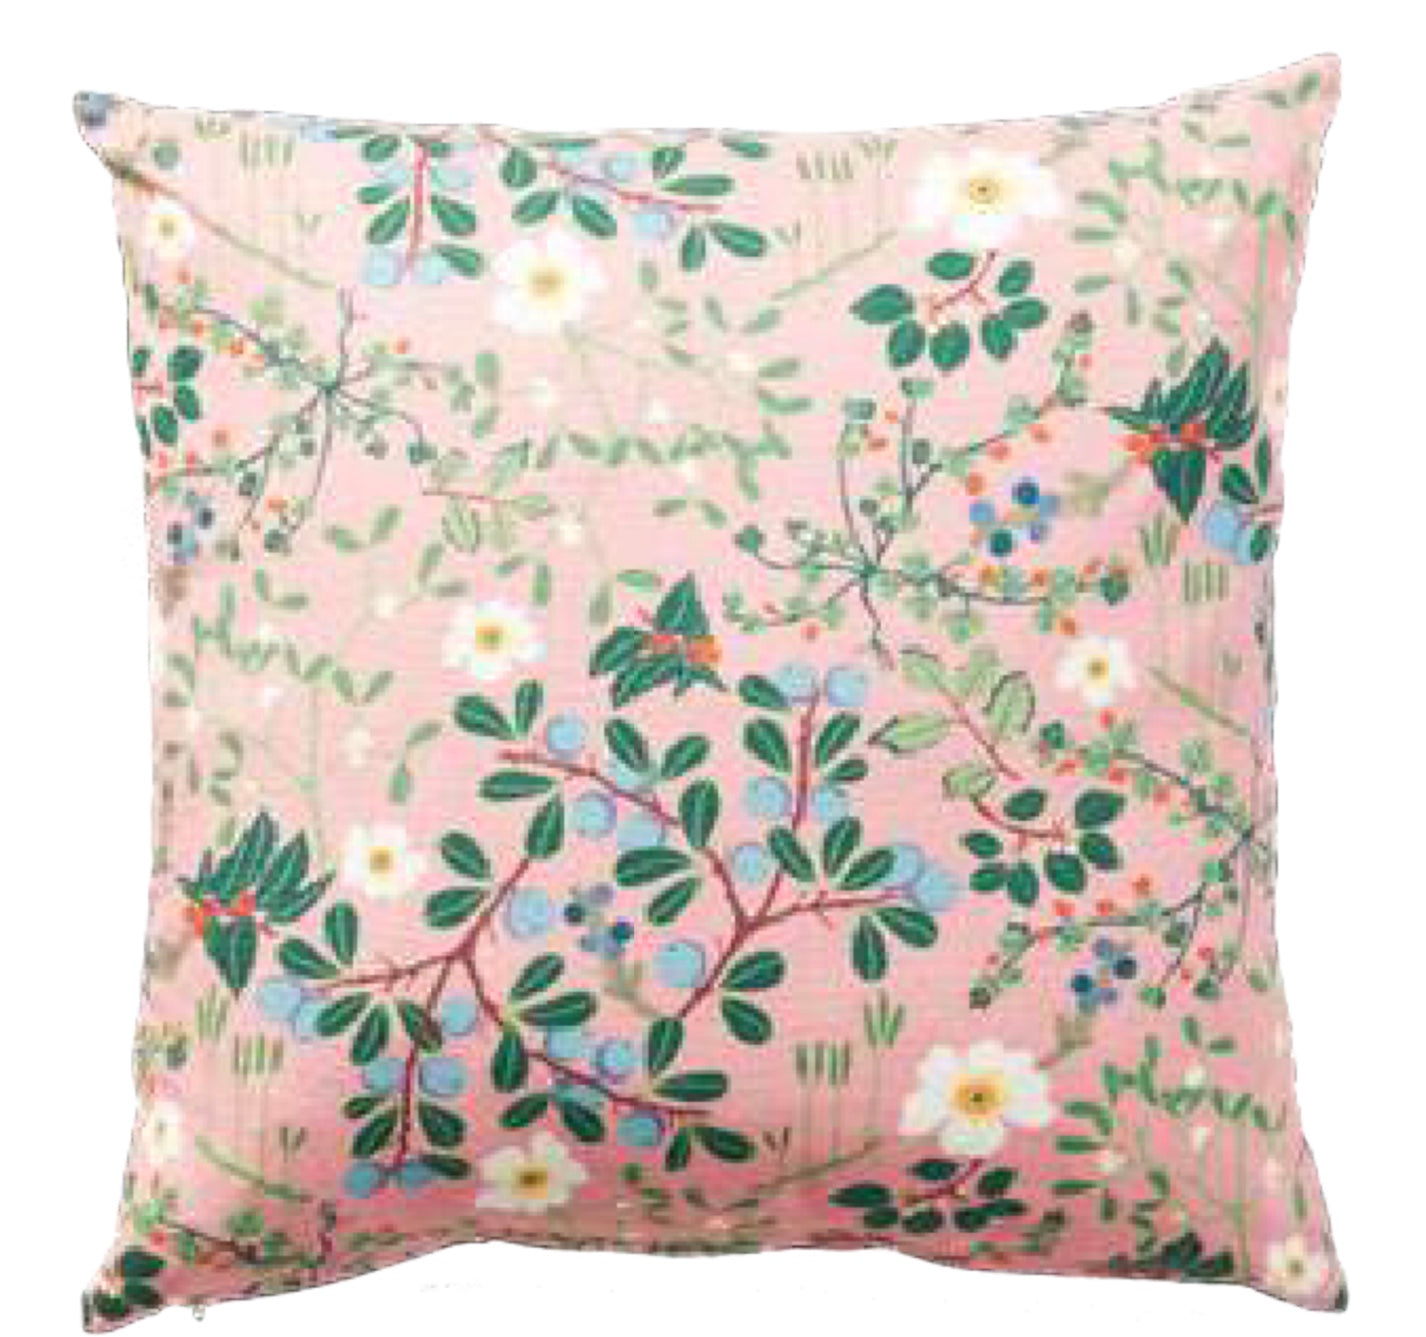 Kuddfodral 'Blackthorn' - Cushion Cover 'Blackthorn'